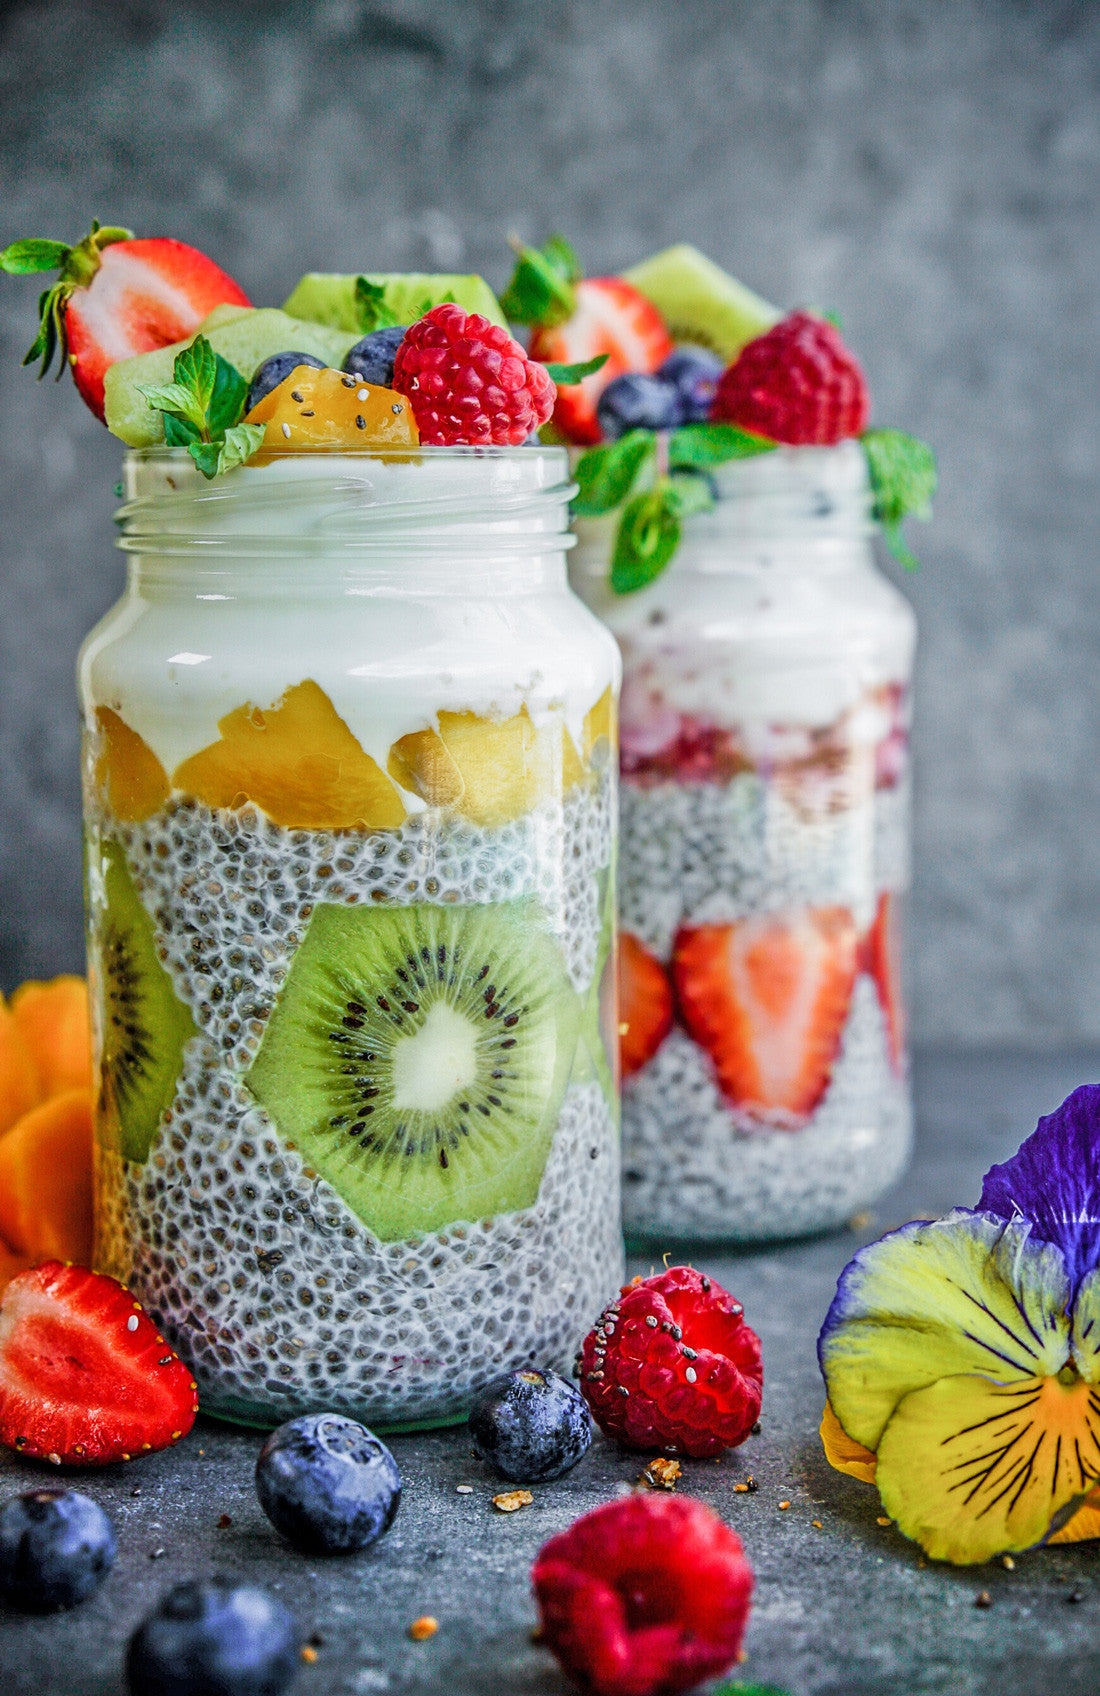 Chia seeds breakfast ideas